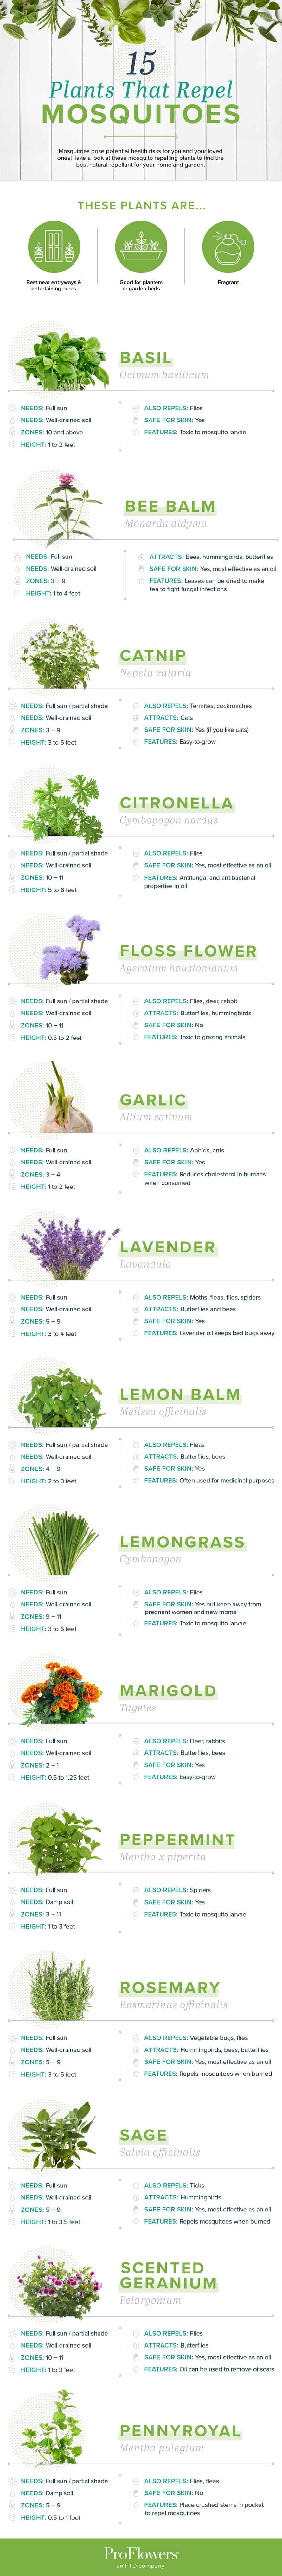 Chart setting out 15 plants that repel mosquitoes